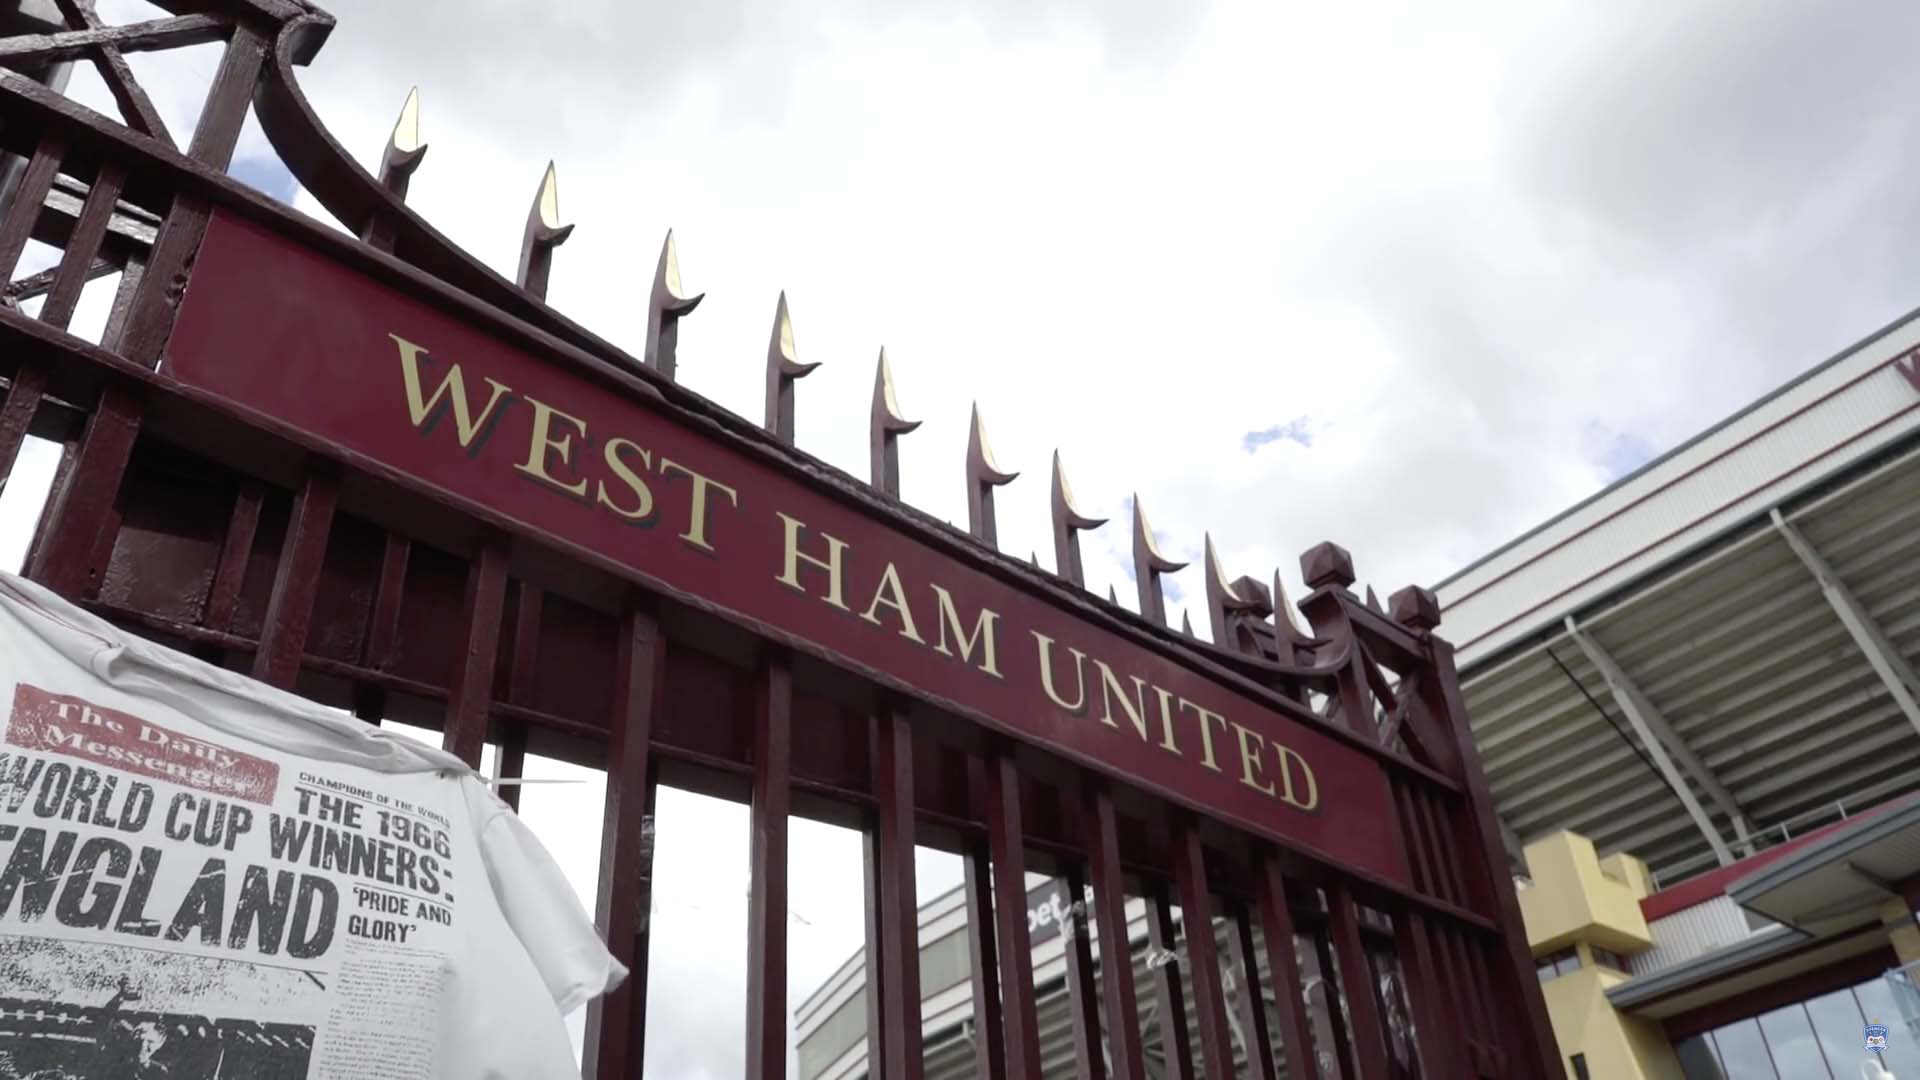 West Ham copy.jpg